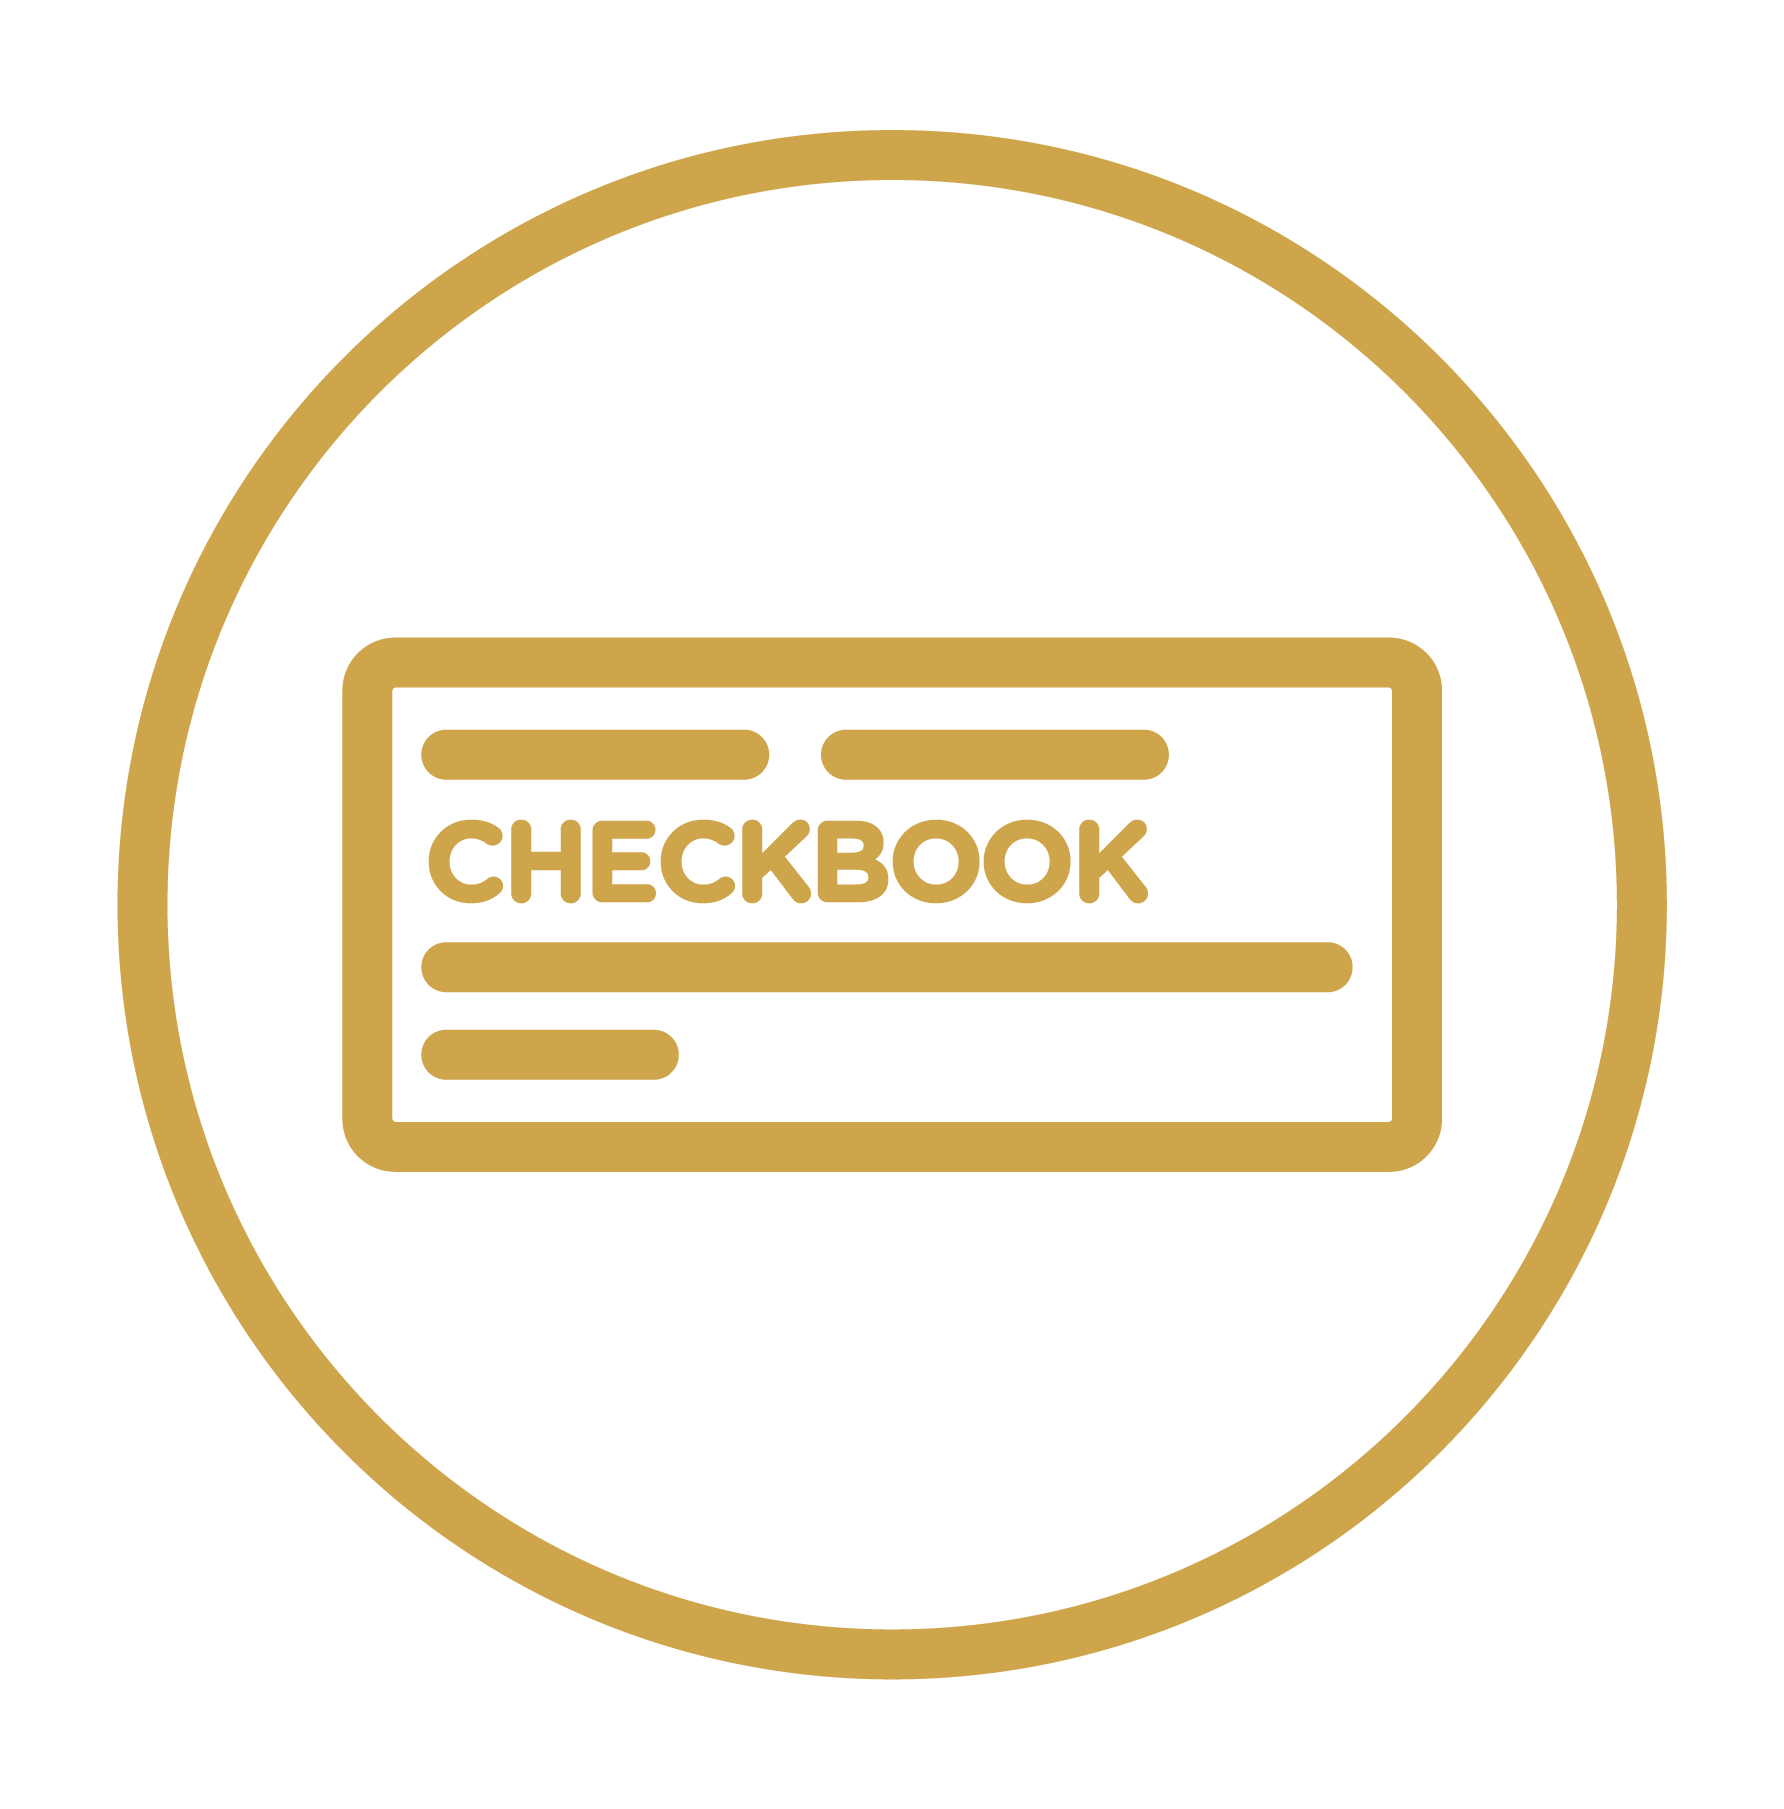 6-Free-Checkbook-and-Managers-Check